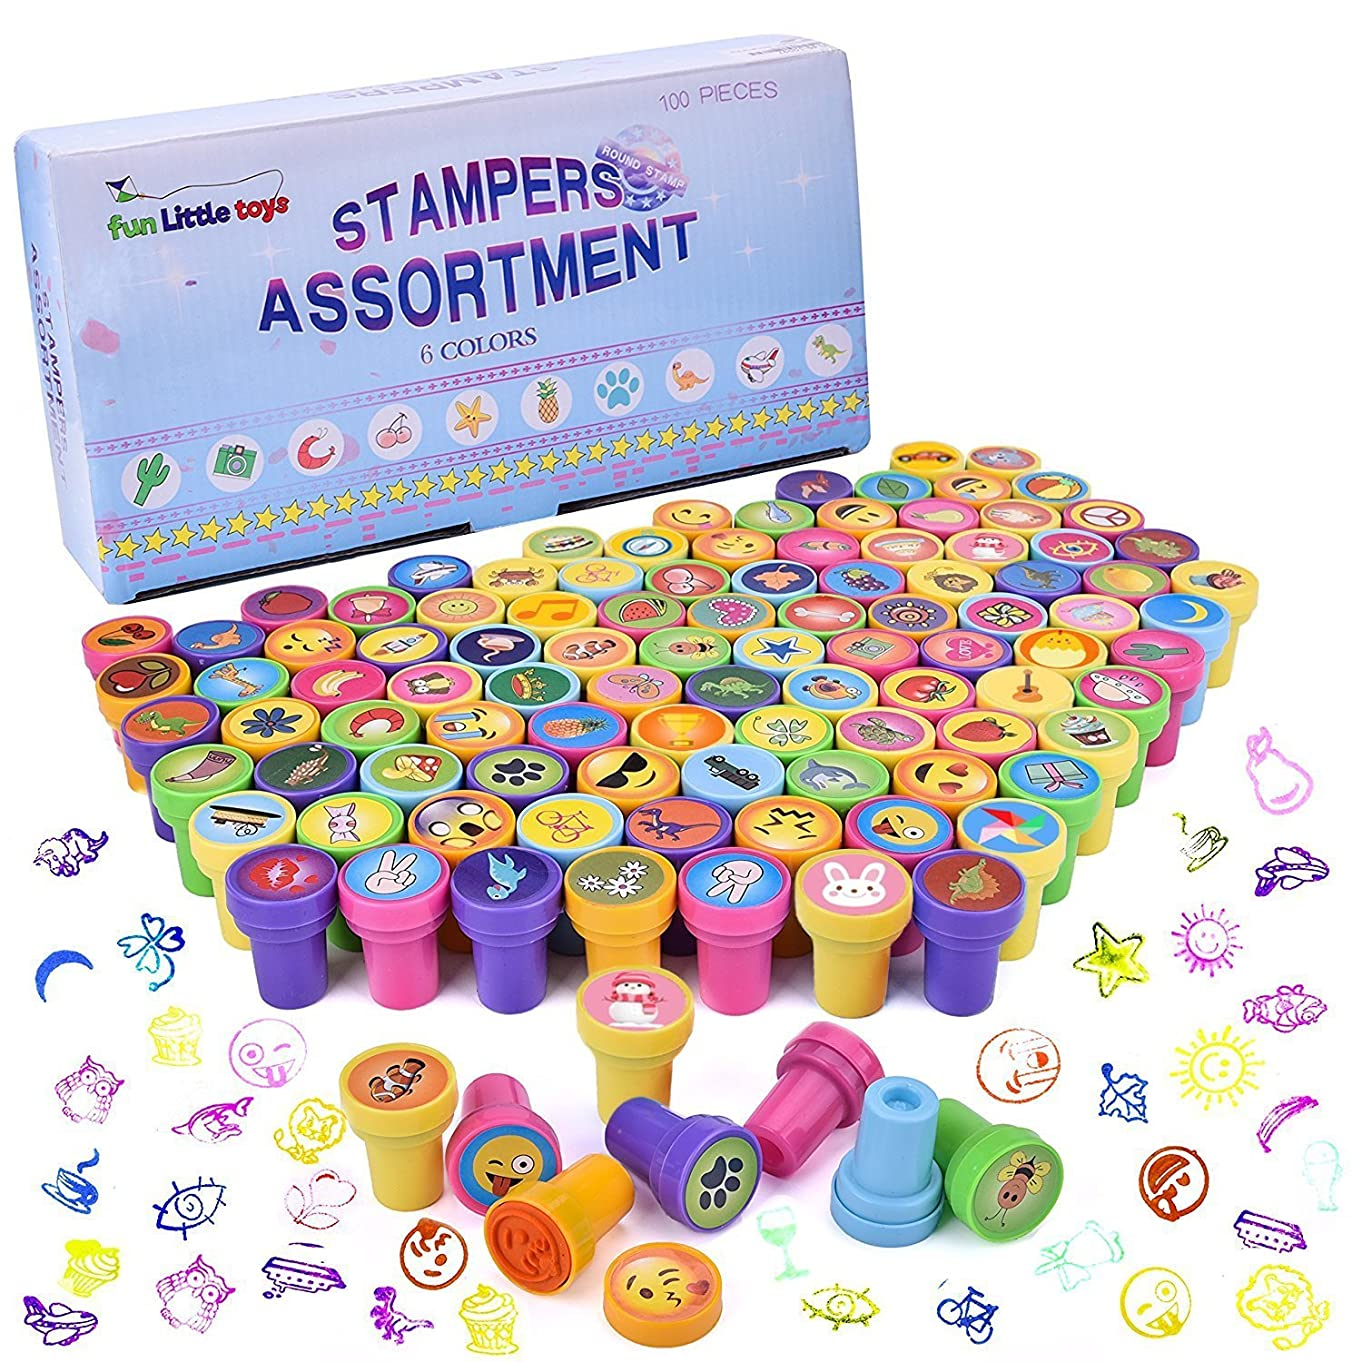 100Pcs Assorted Stamps All in One Box Including 100 Different Designs for Kids Party Favors, Prizes, Pinata Toys and More